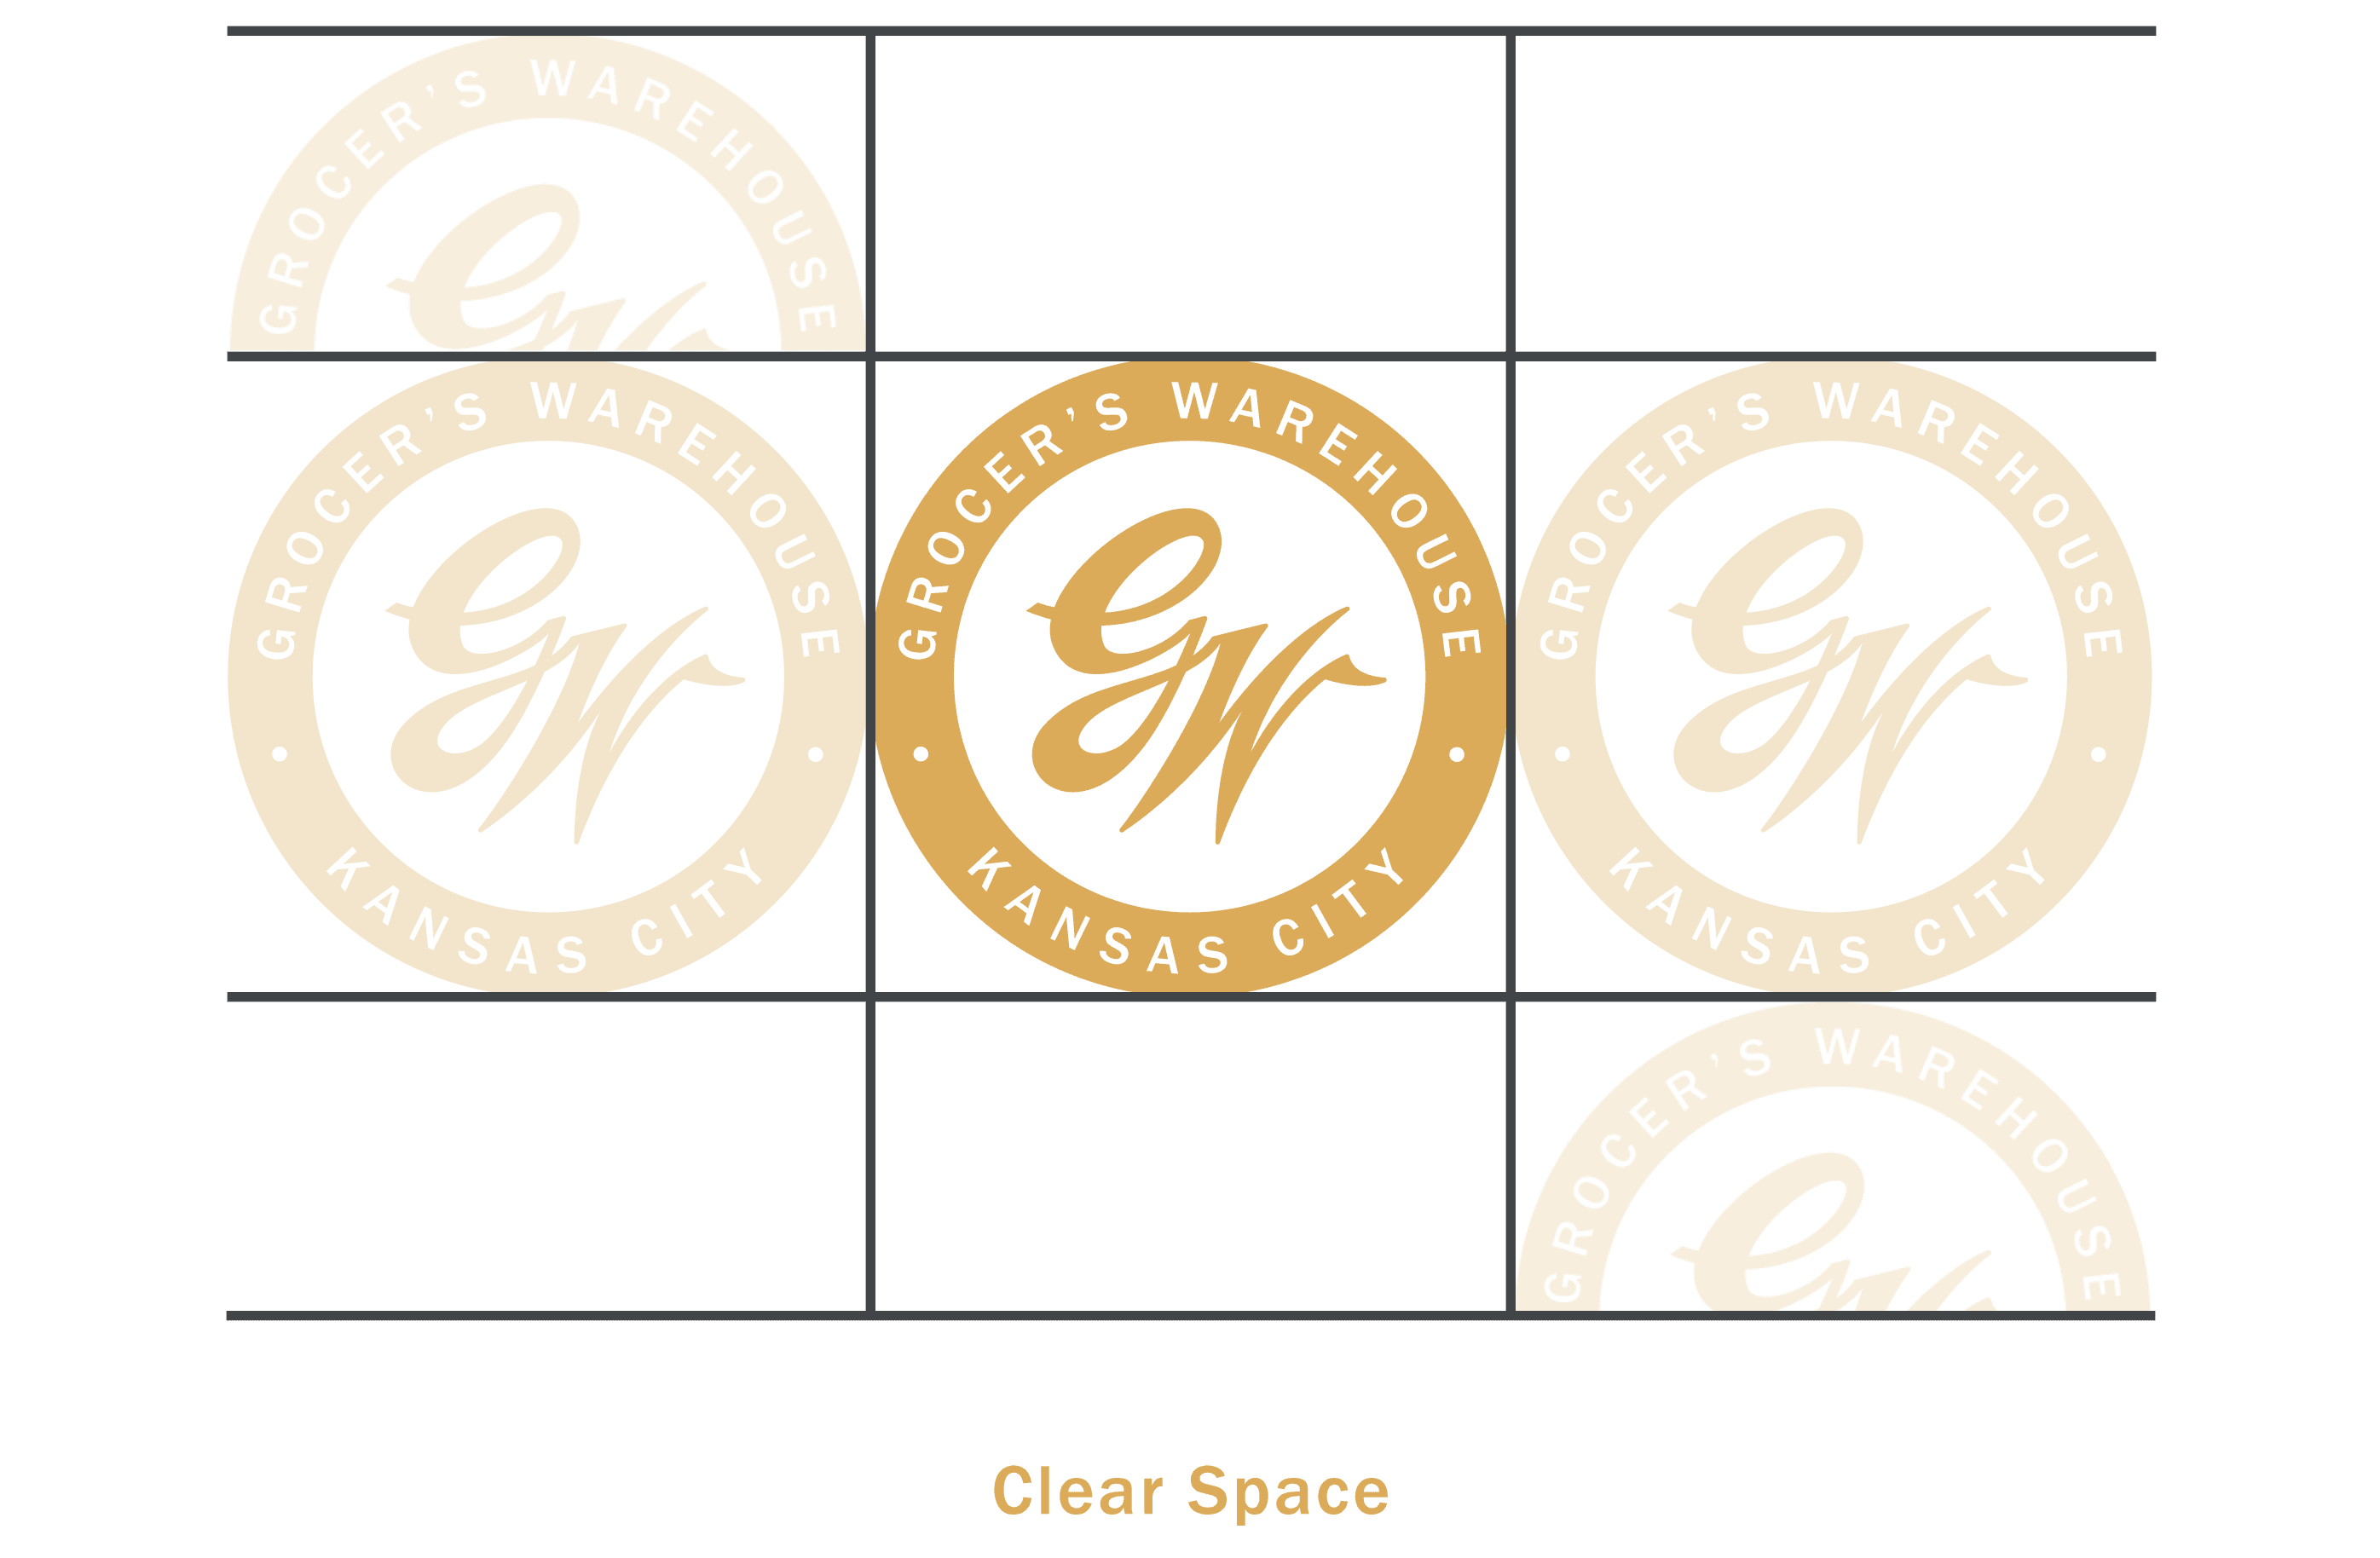 gw-clearspace